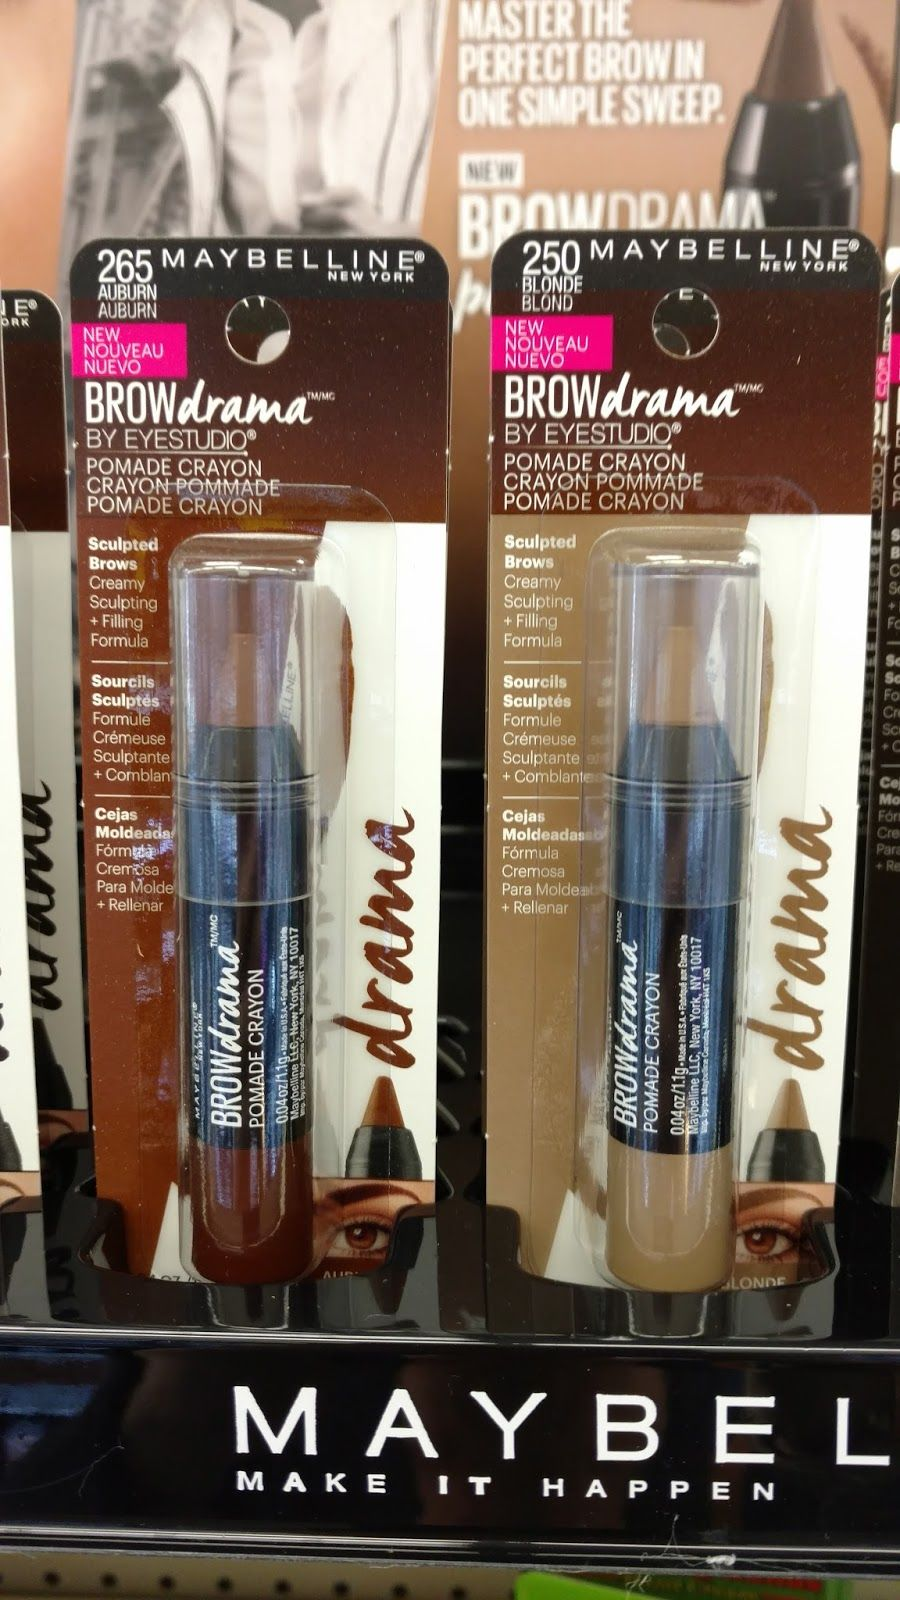 69af15a96da Maybelline Brow Drama Pomade Crayon #mnybrows (received these products  complimentary for testing purposes)